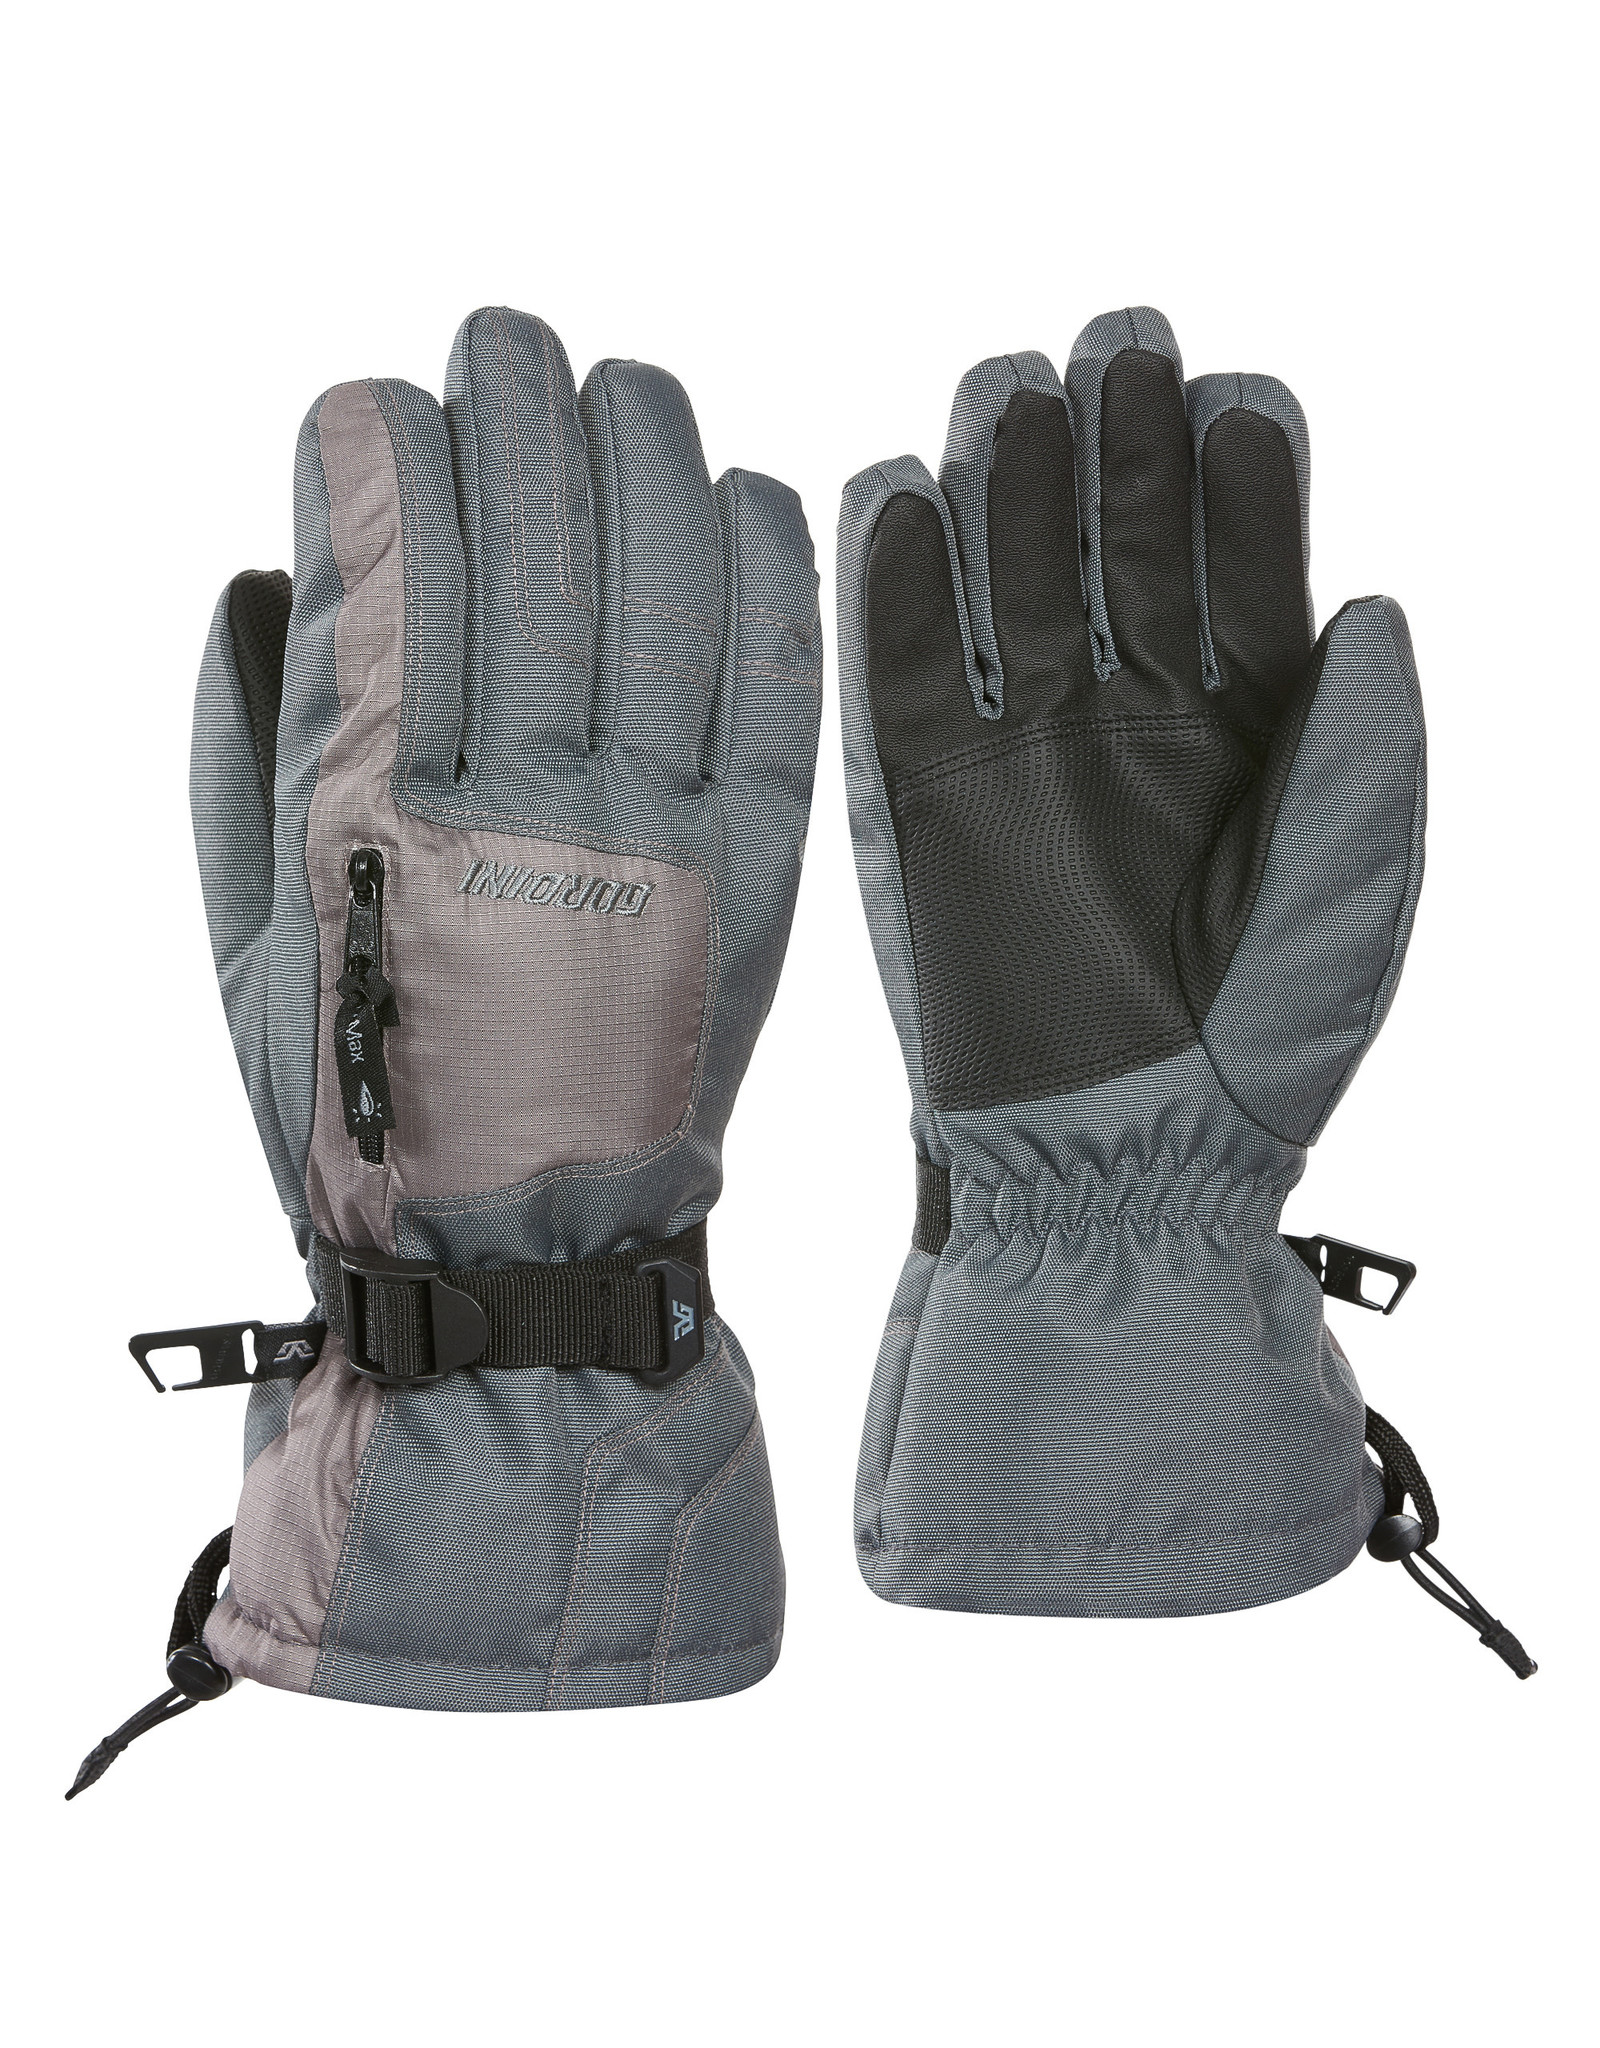 GORDINI GORDINI ULTA DRI-MAX GAUNTLET IV MENS GLOVE DARK GREY LIGHT GREY 20